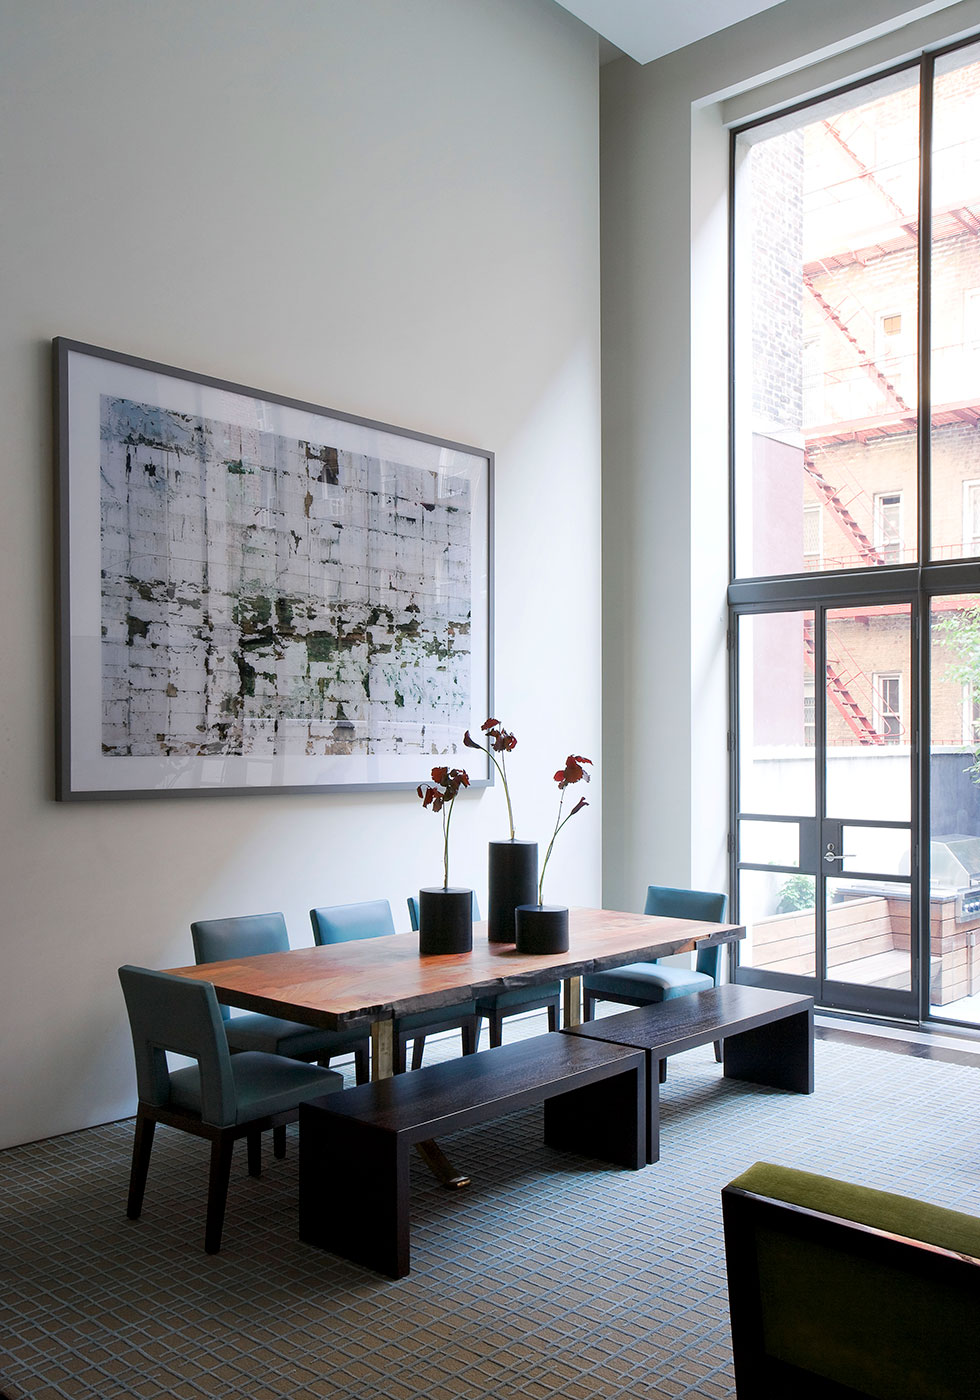 East 92nd Street Town House, New York